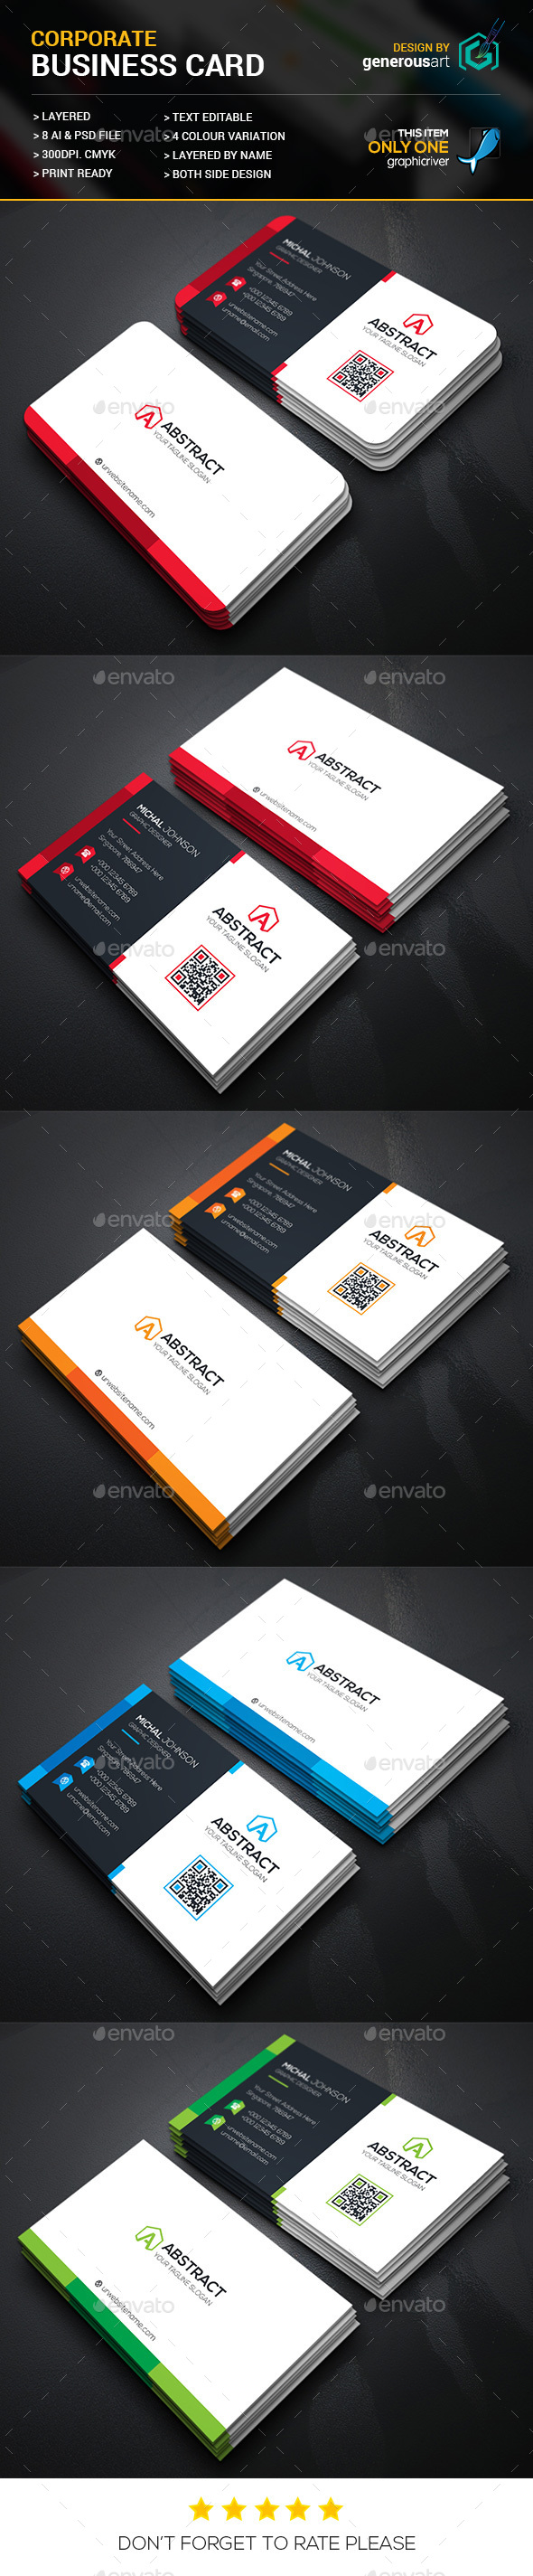 Abstract Corporate Business Card - Corporate Business Cards